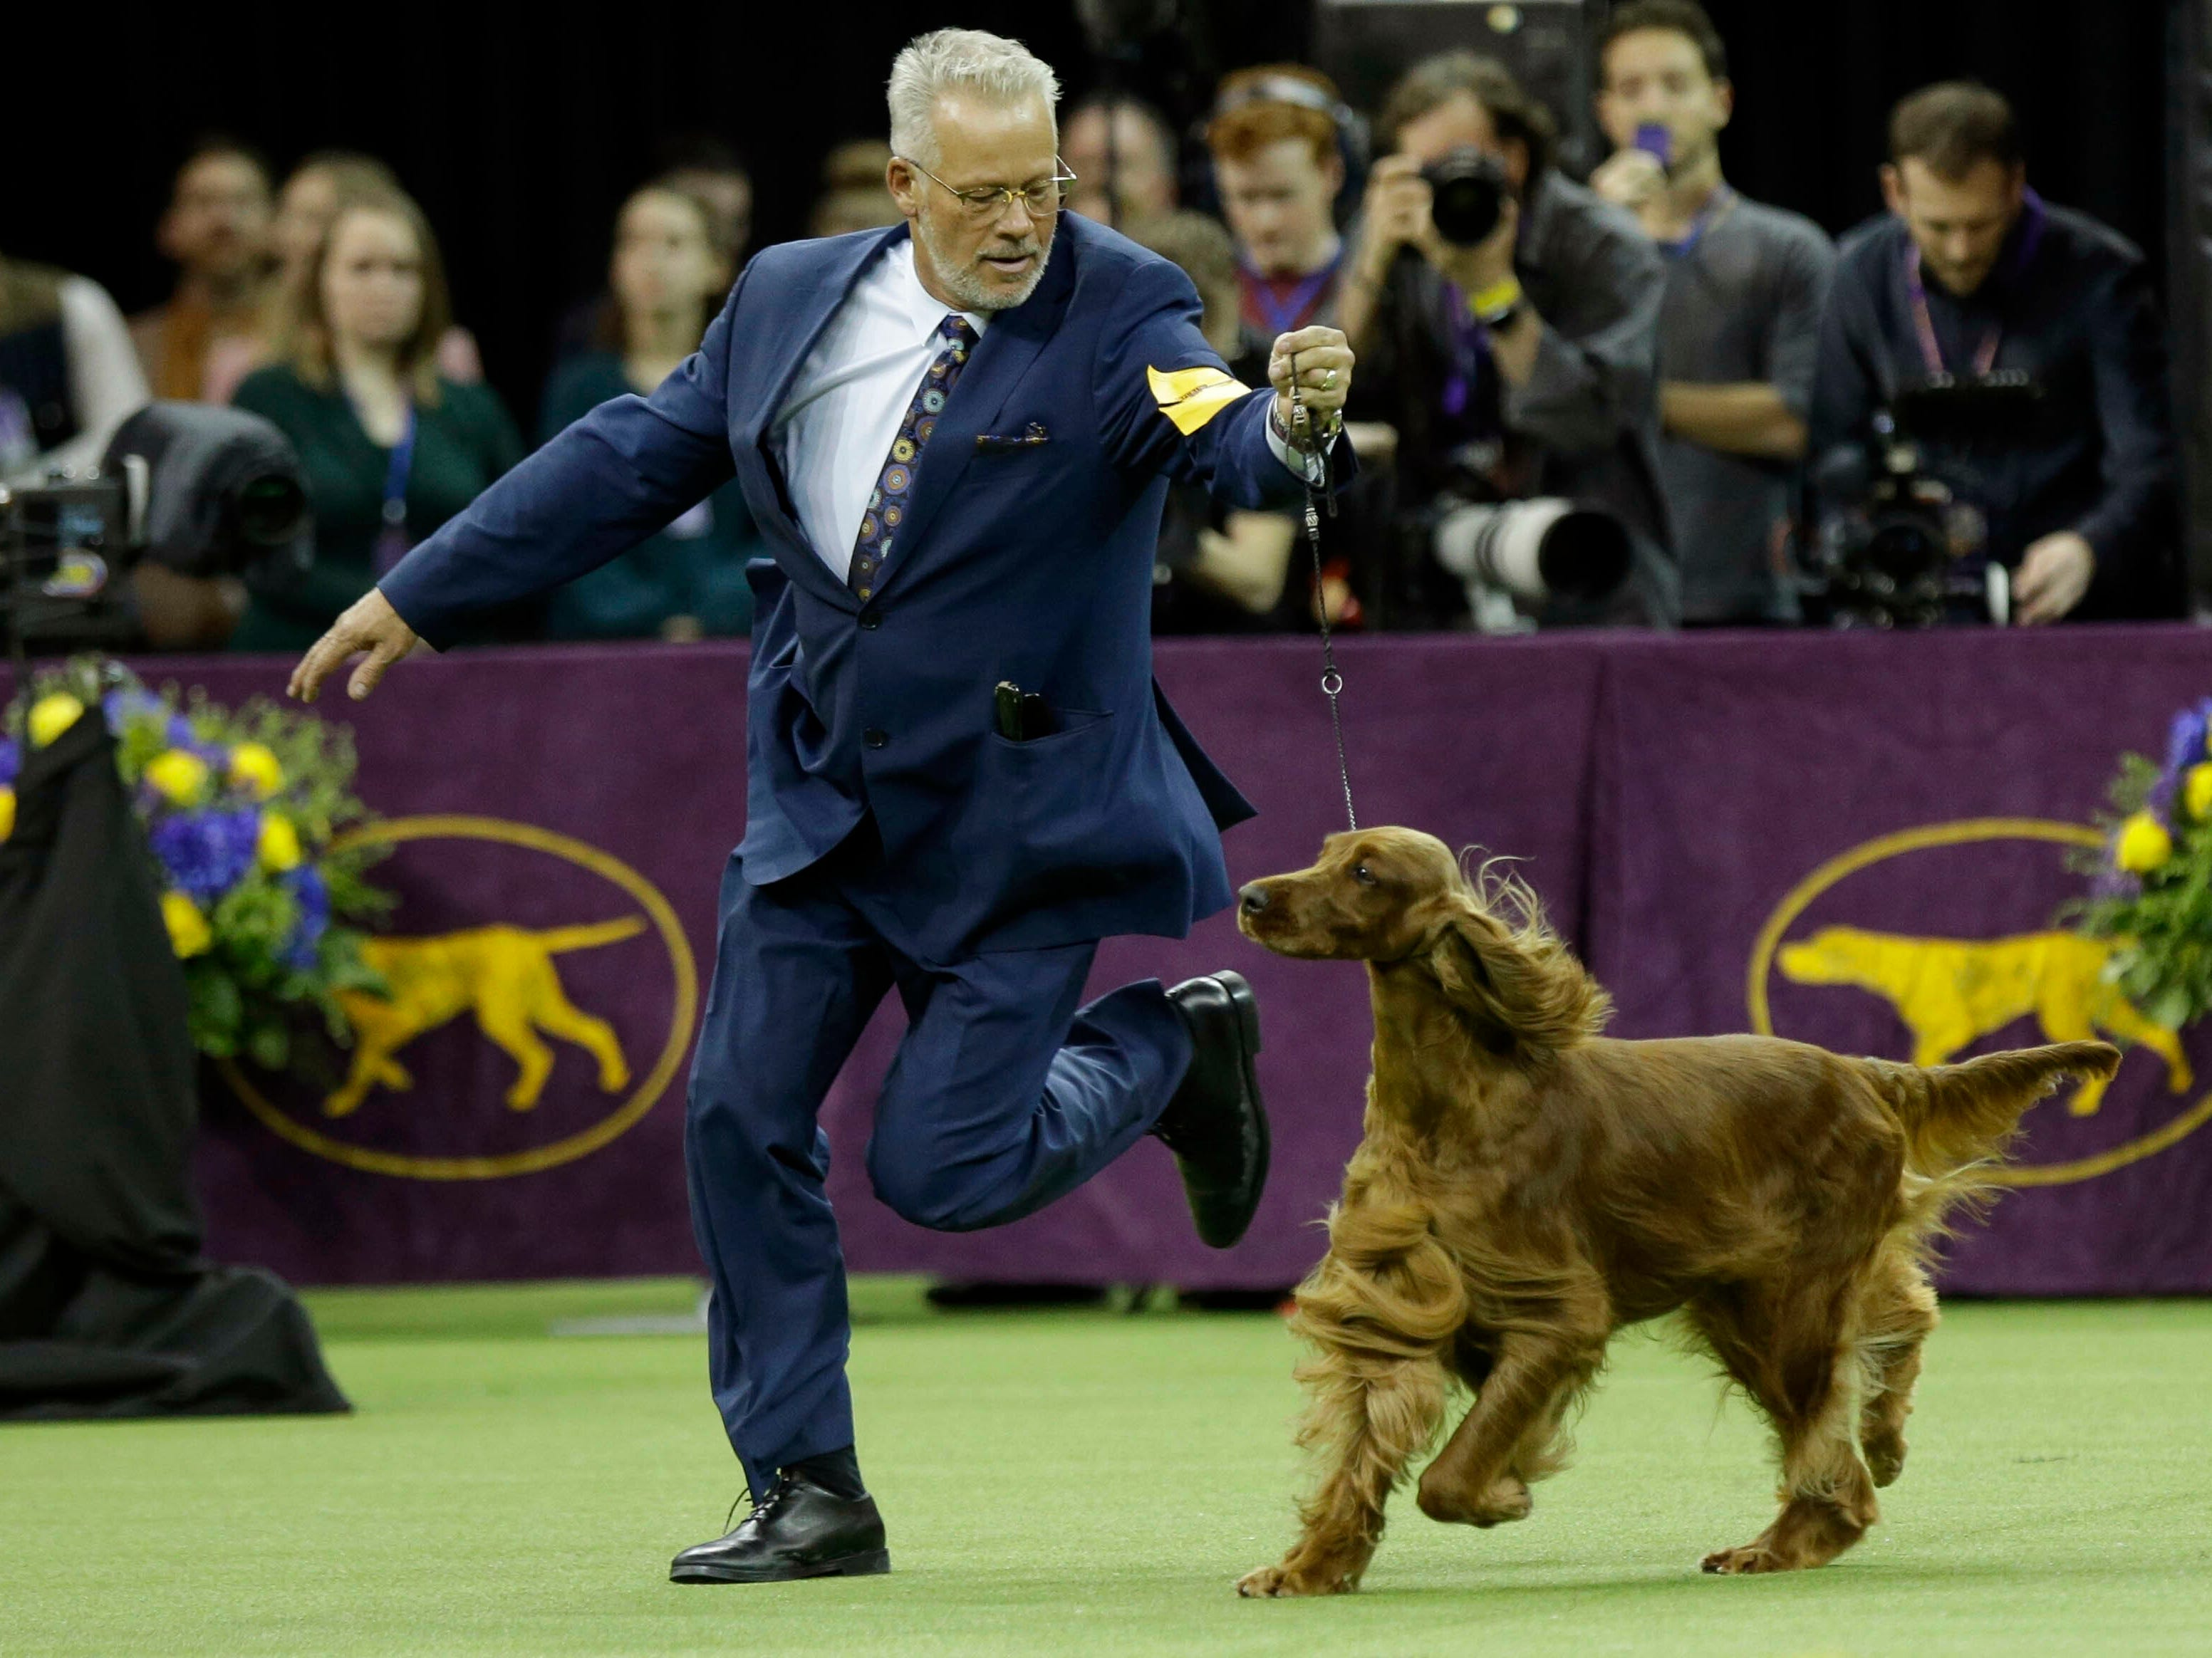 Adele, and Irish Setter, competes with the sporting group at the 143rd Westminster Kennel Club Dog Show.